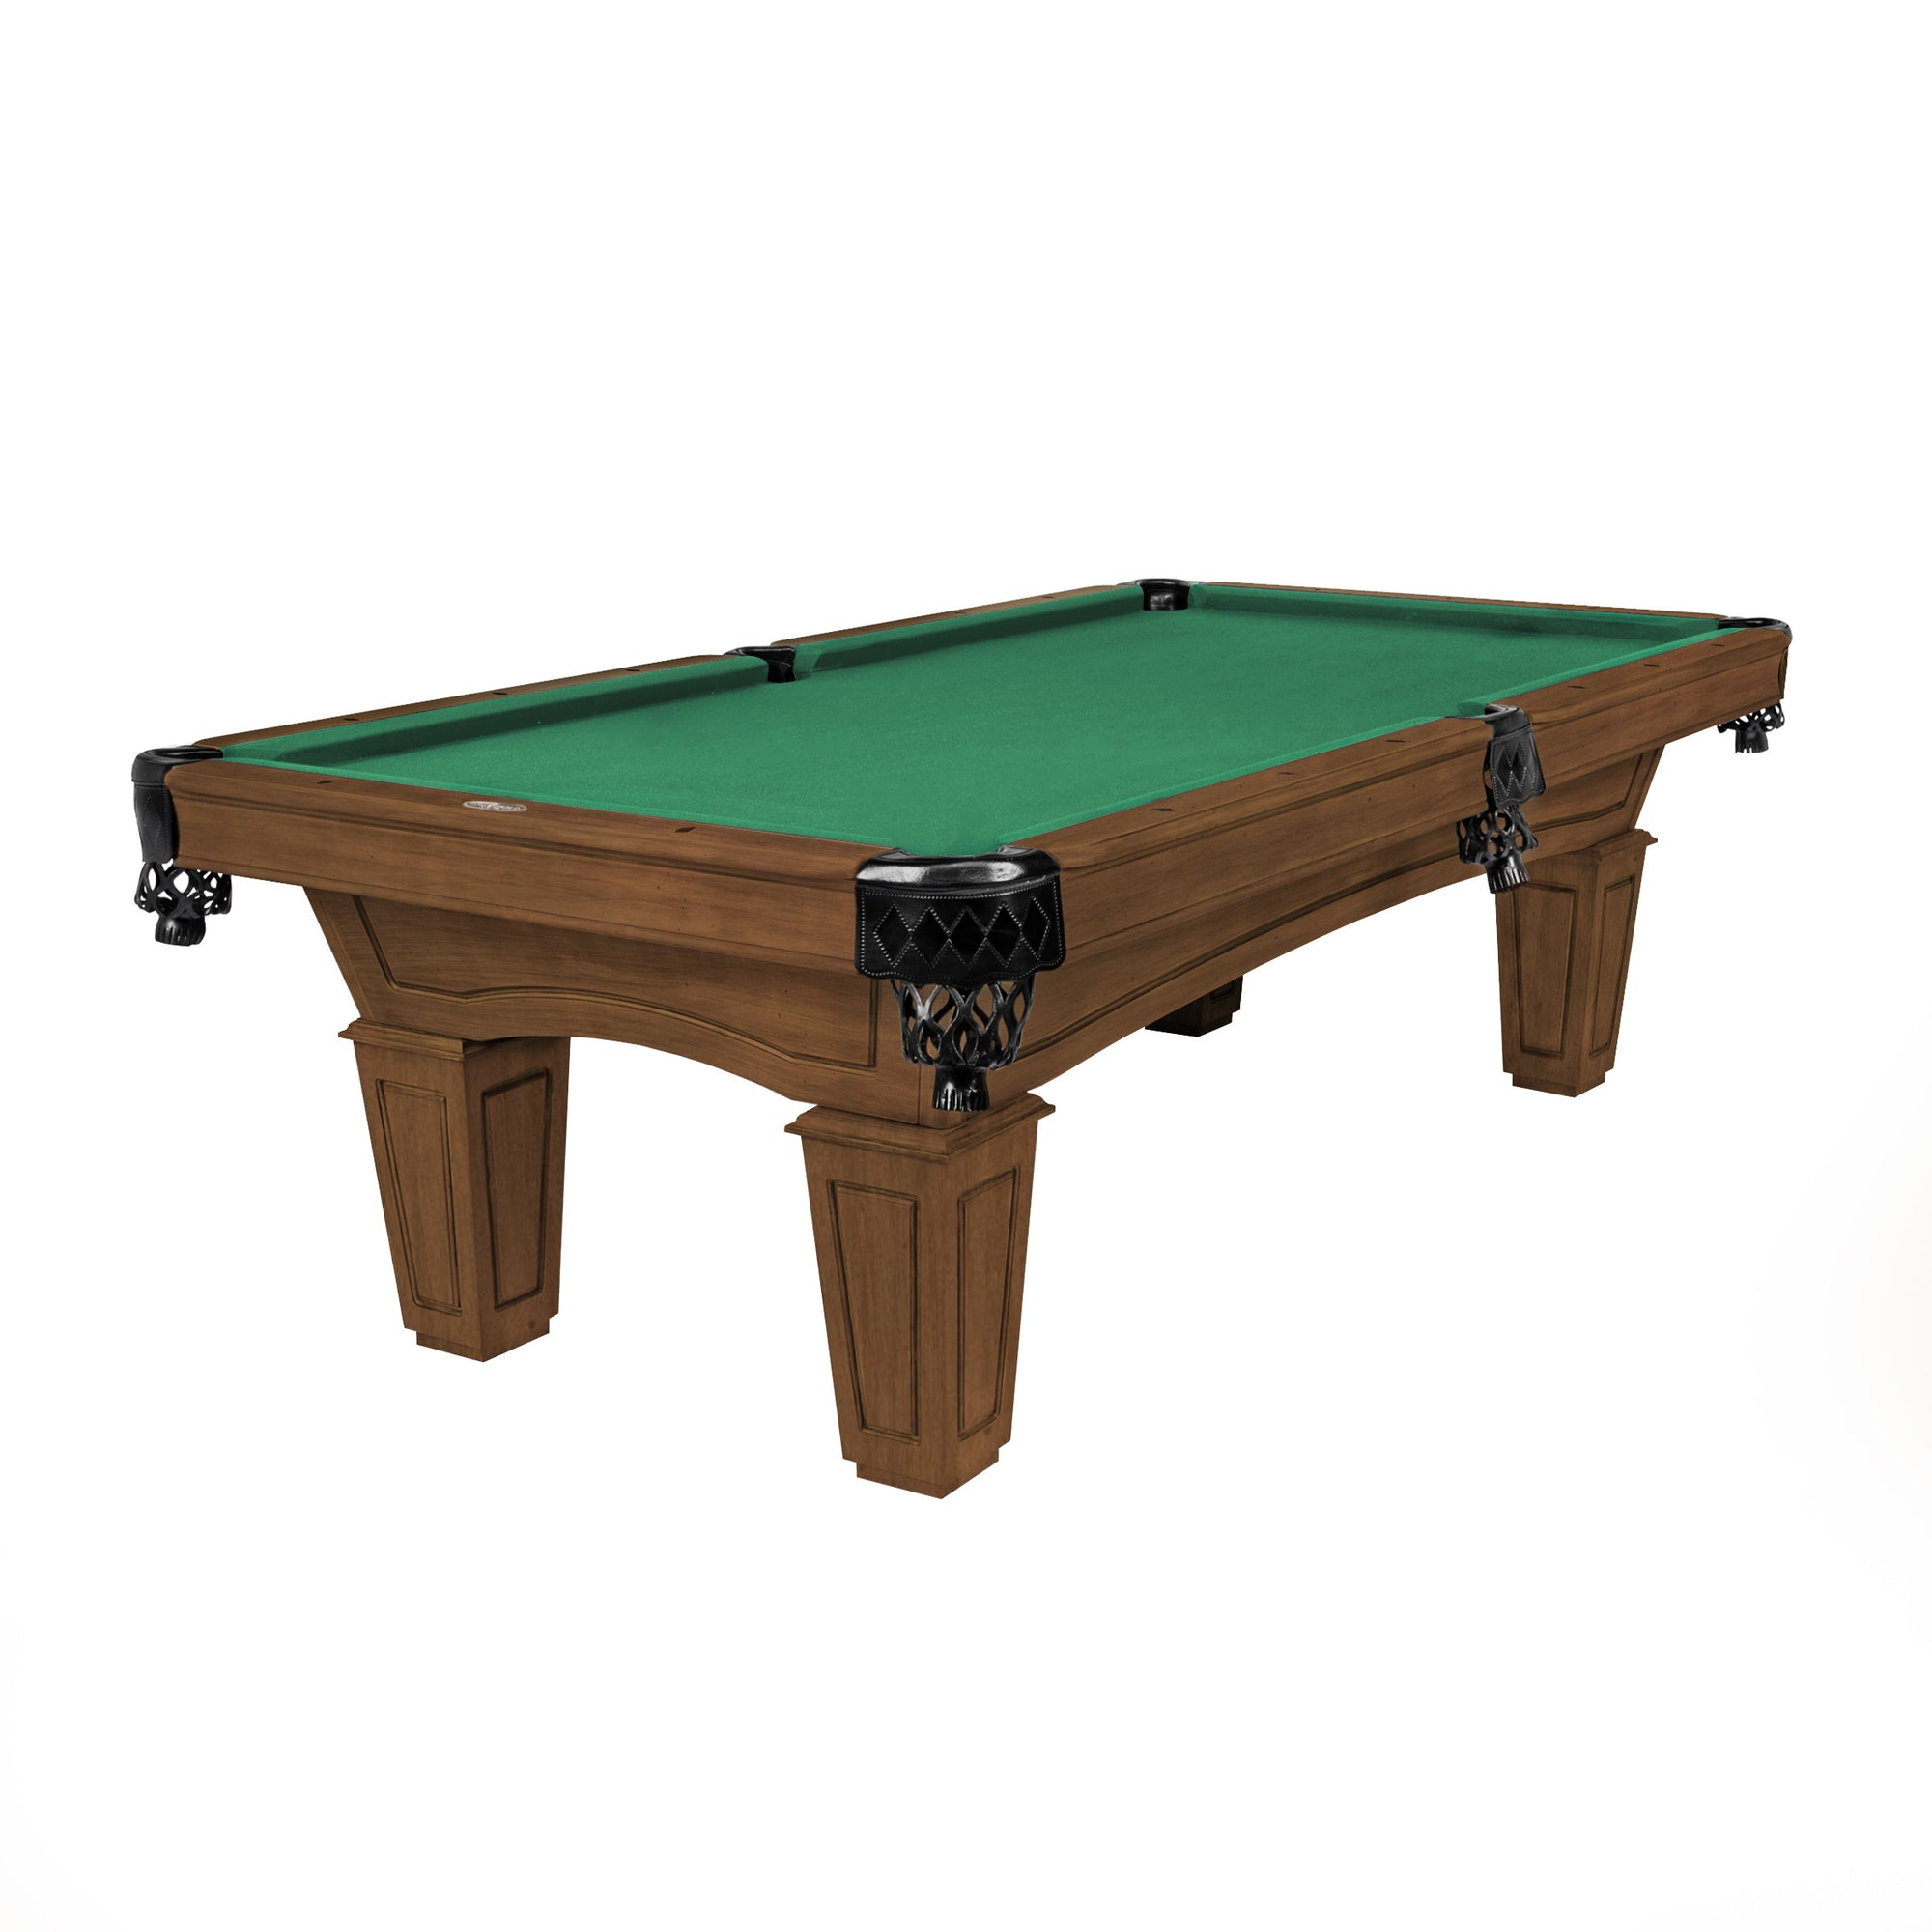 The Resolute Pool Table, Whiskey with Tapered Box Legs